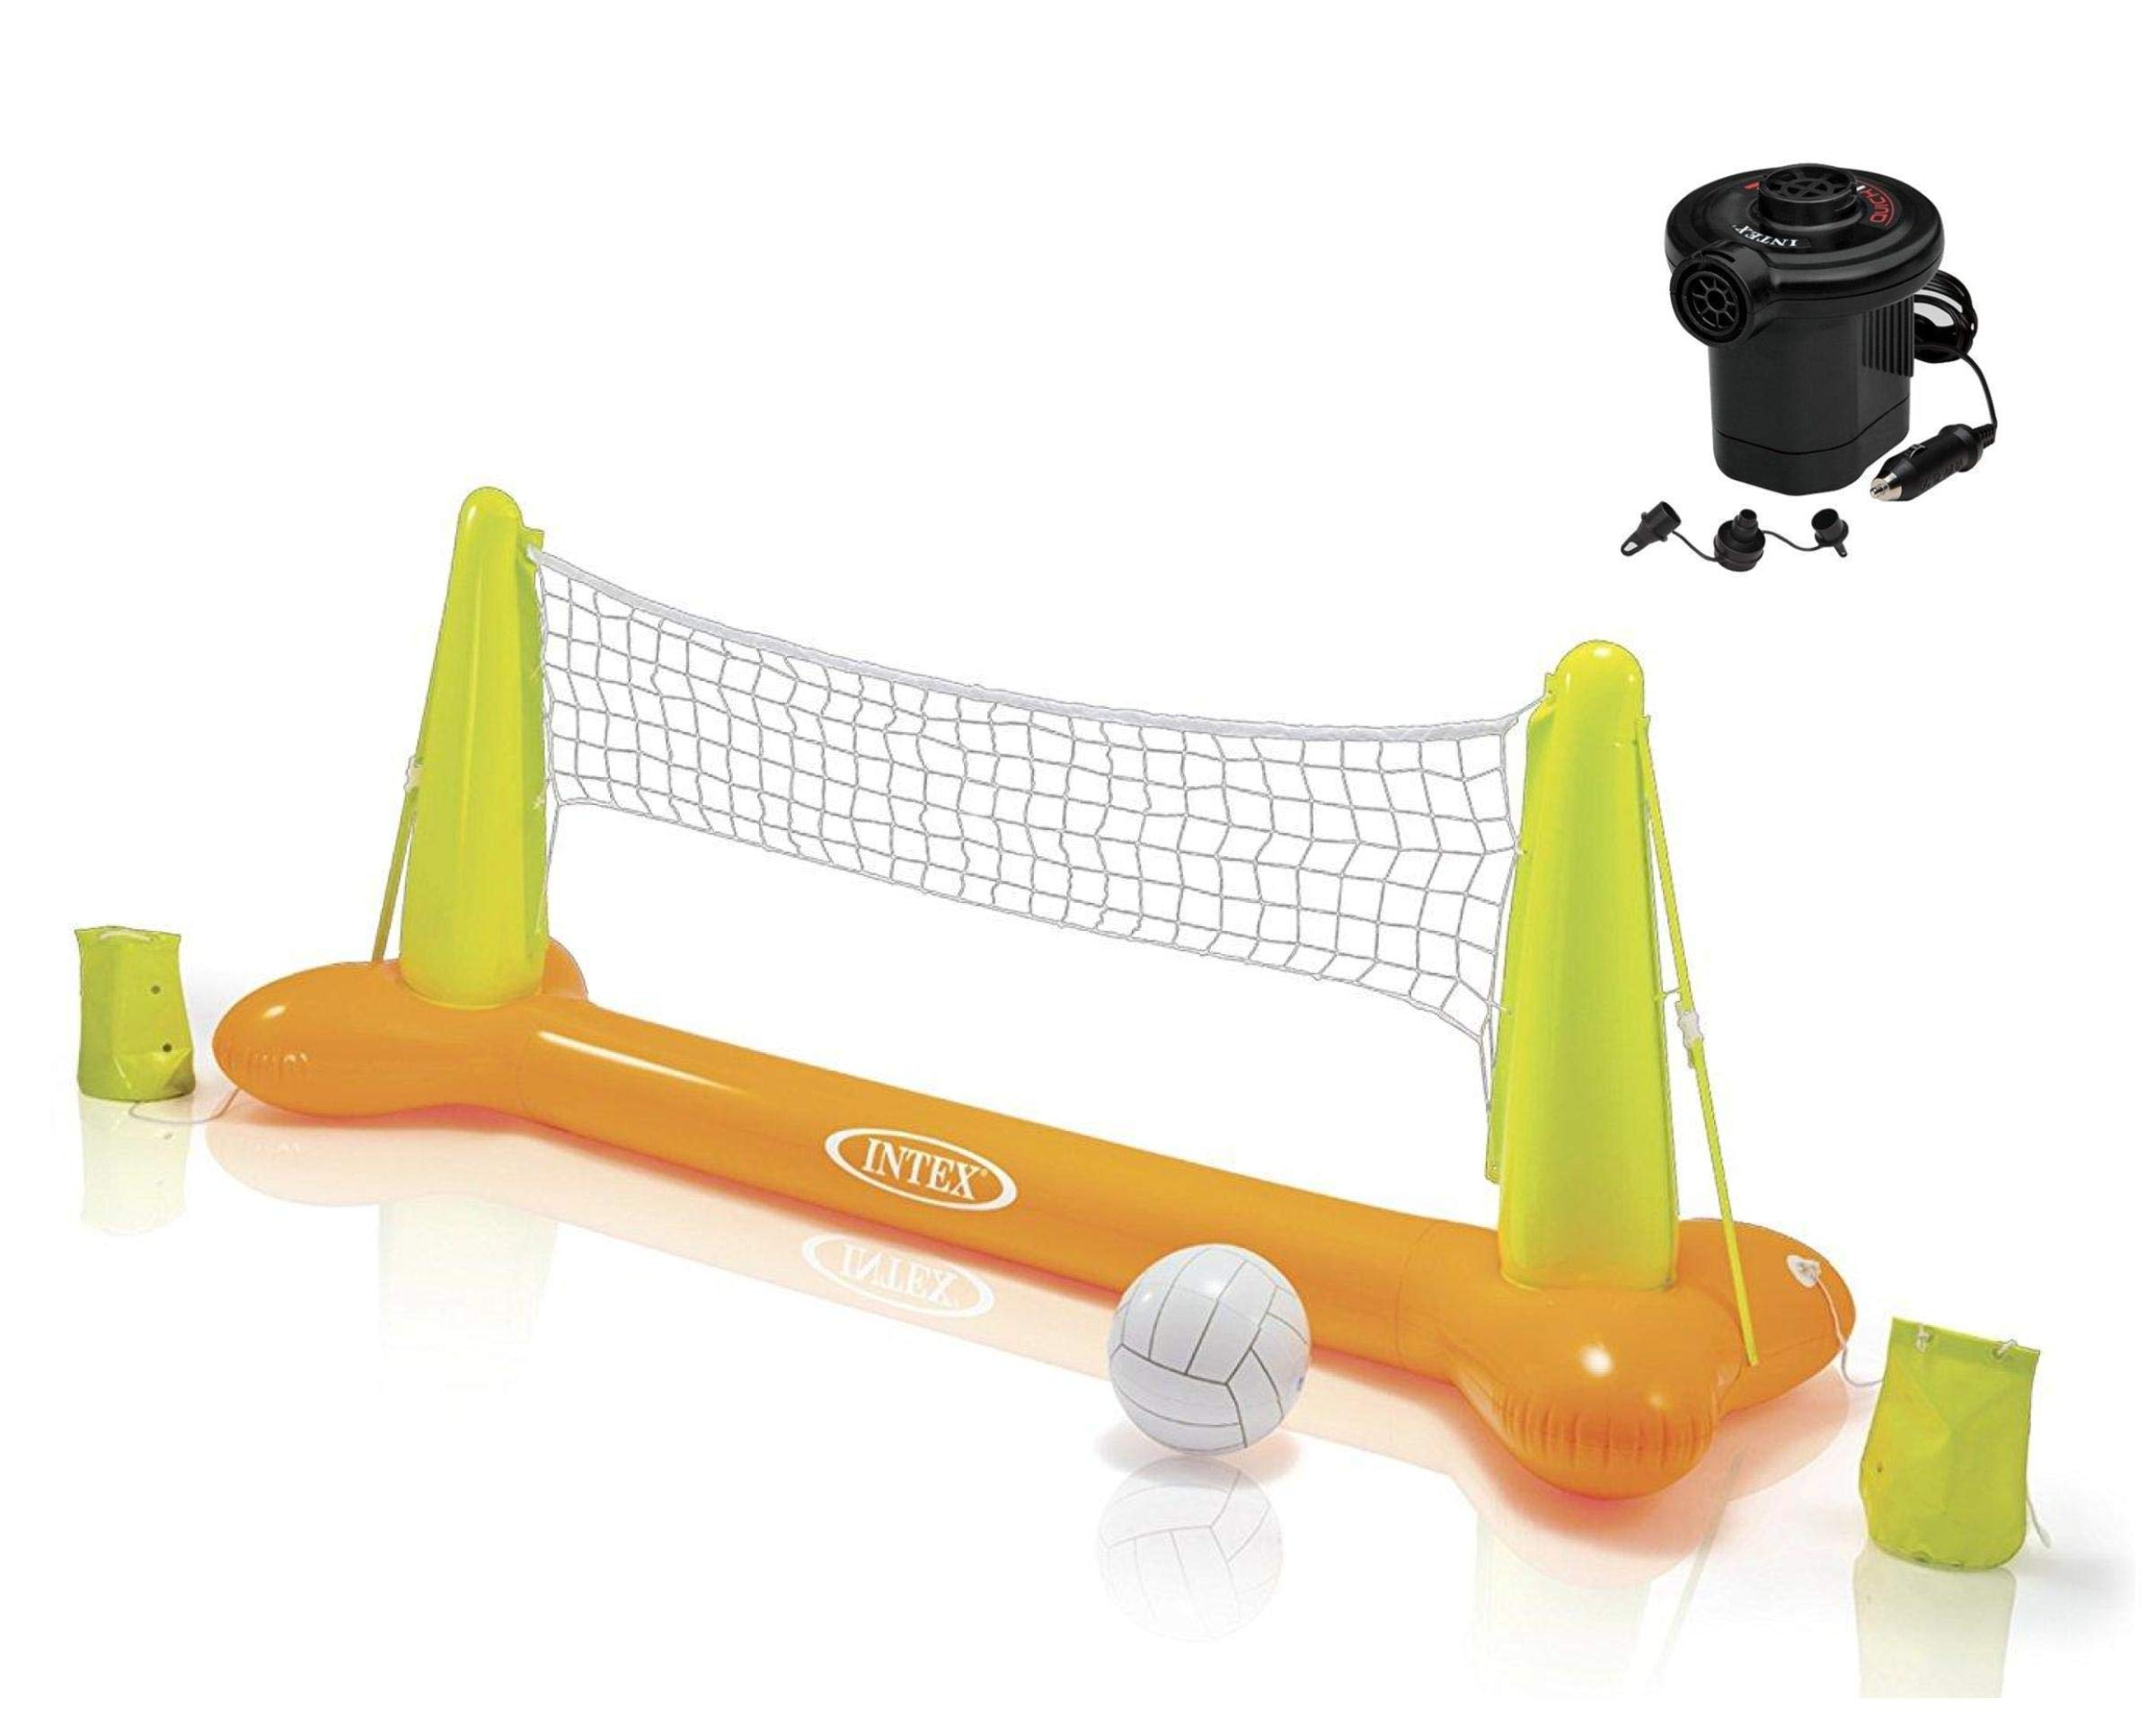 Intex Pool Volleyball Game, 94'' X 25'' X 36'' (Volleyball Net with Pump)